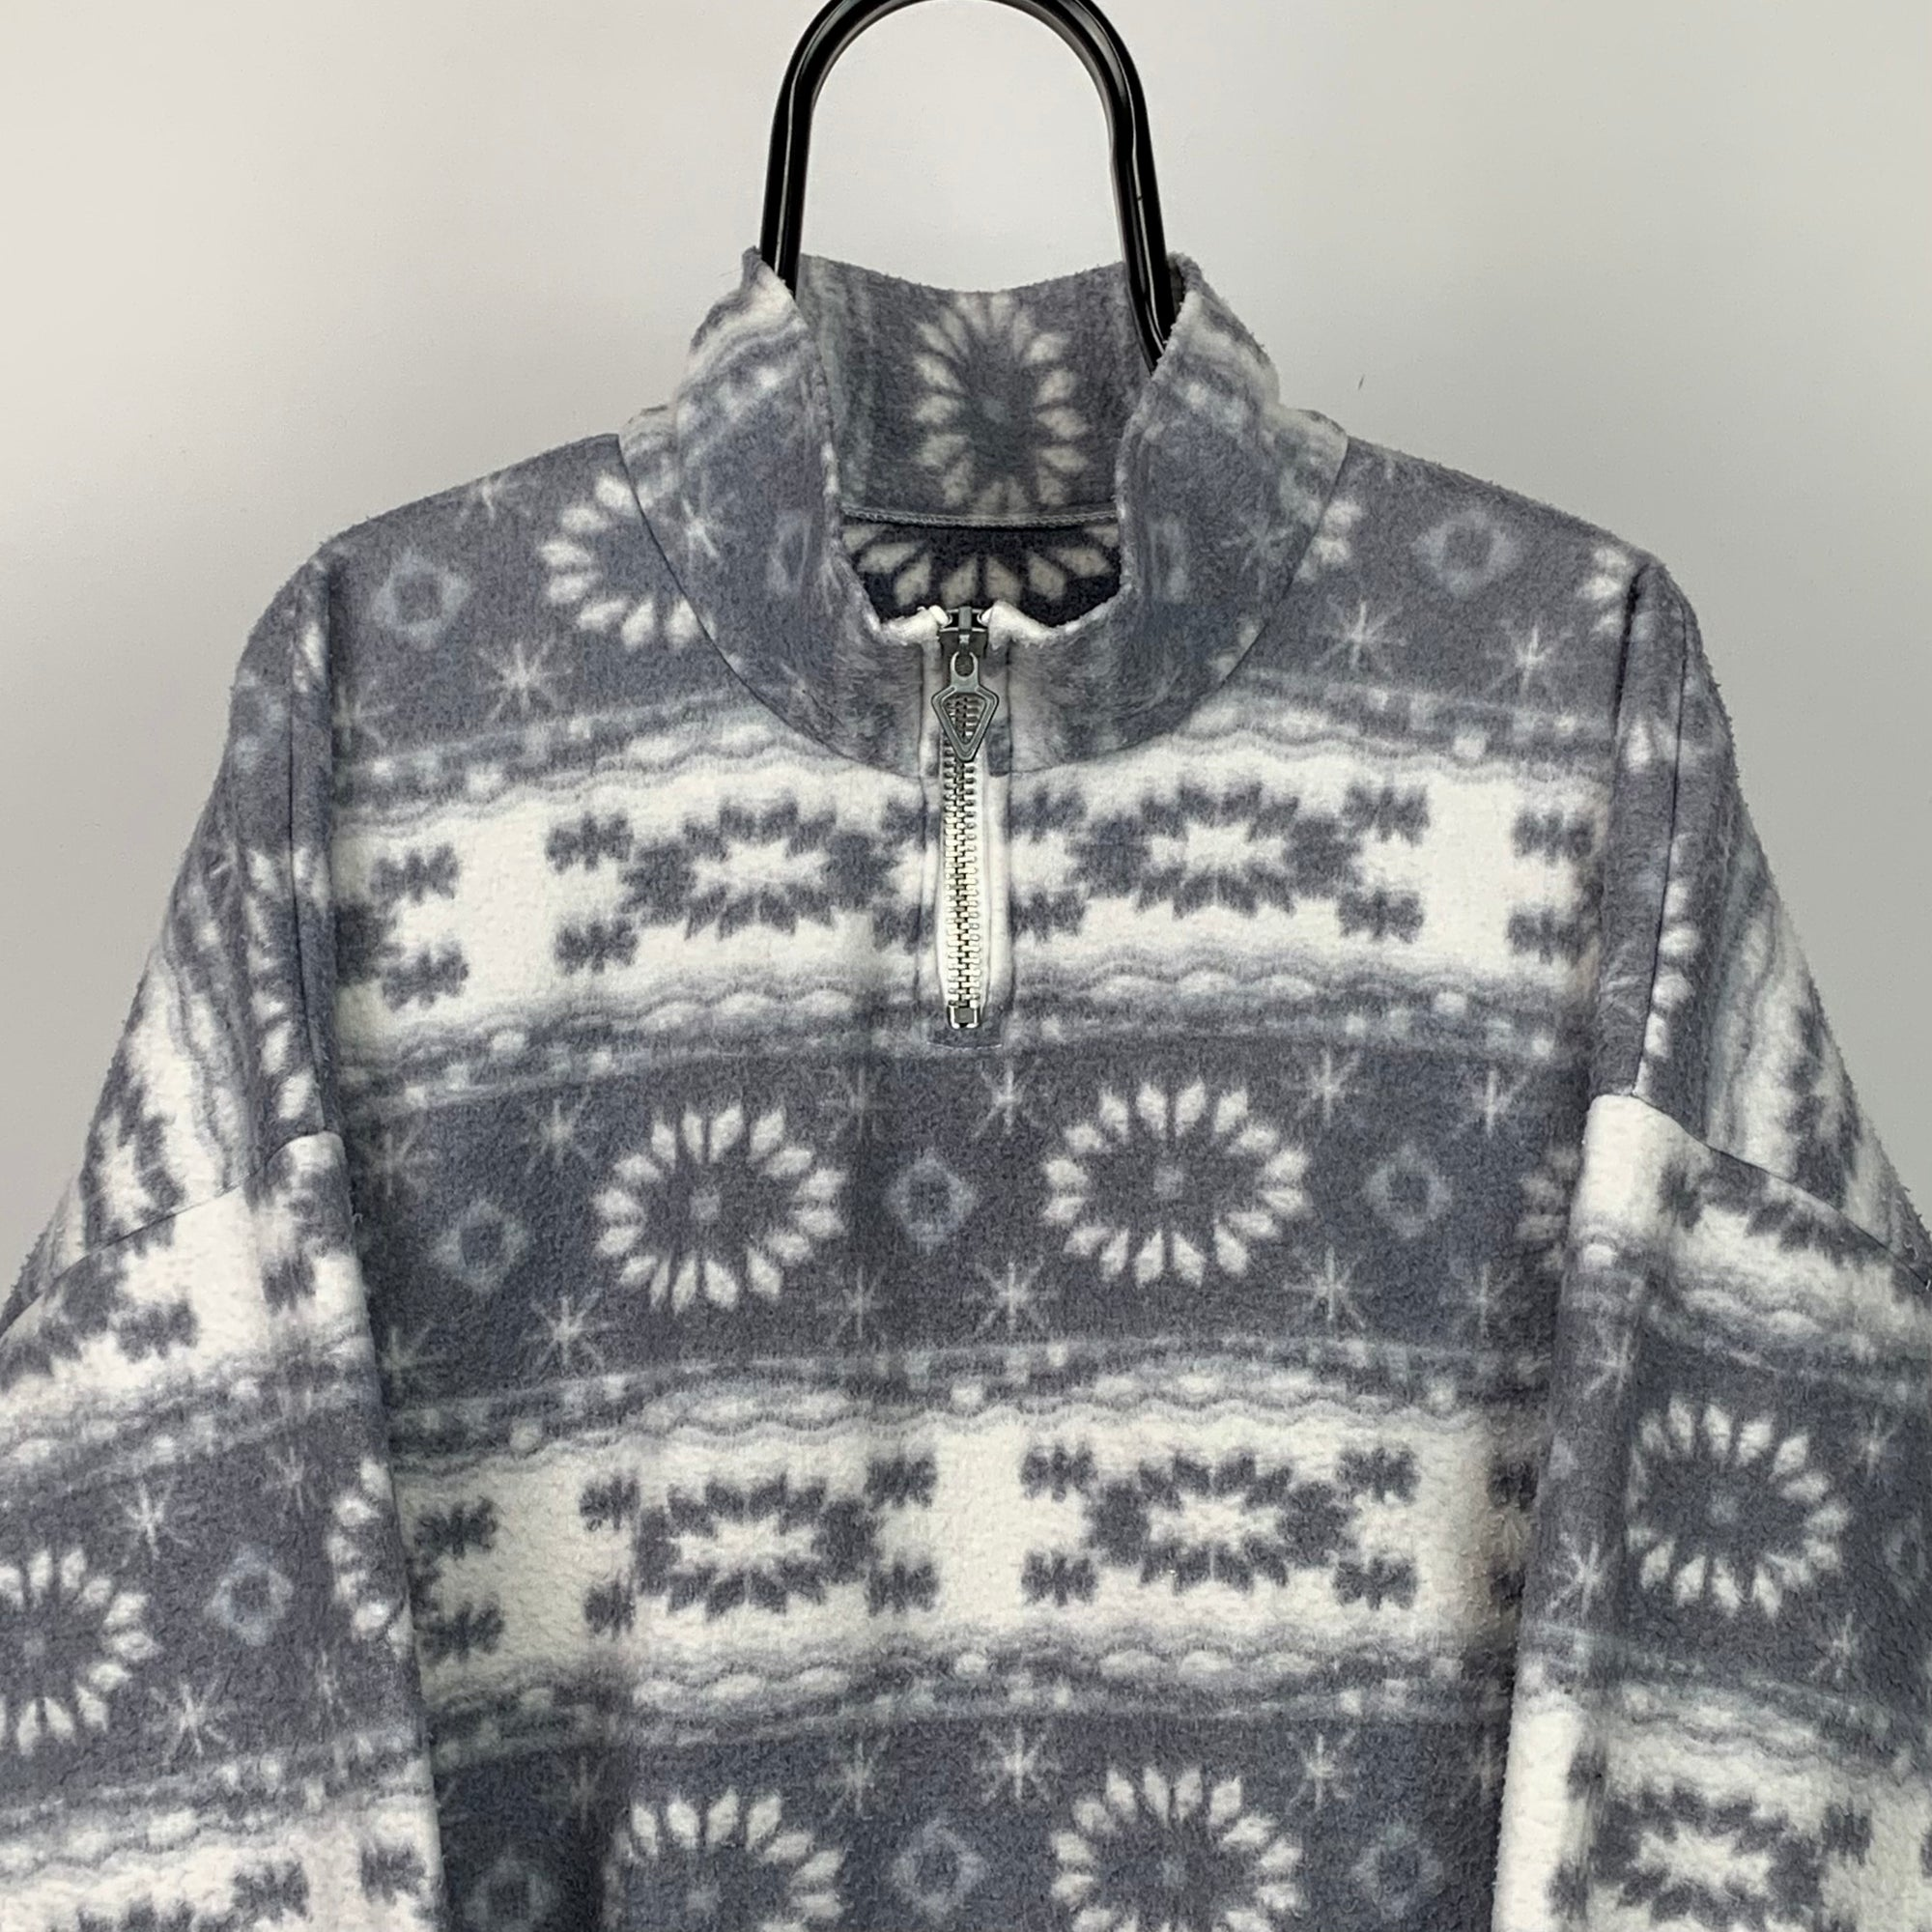 Vintage Snowflake Print Fleece - Men's XL/Women's XXL